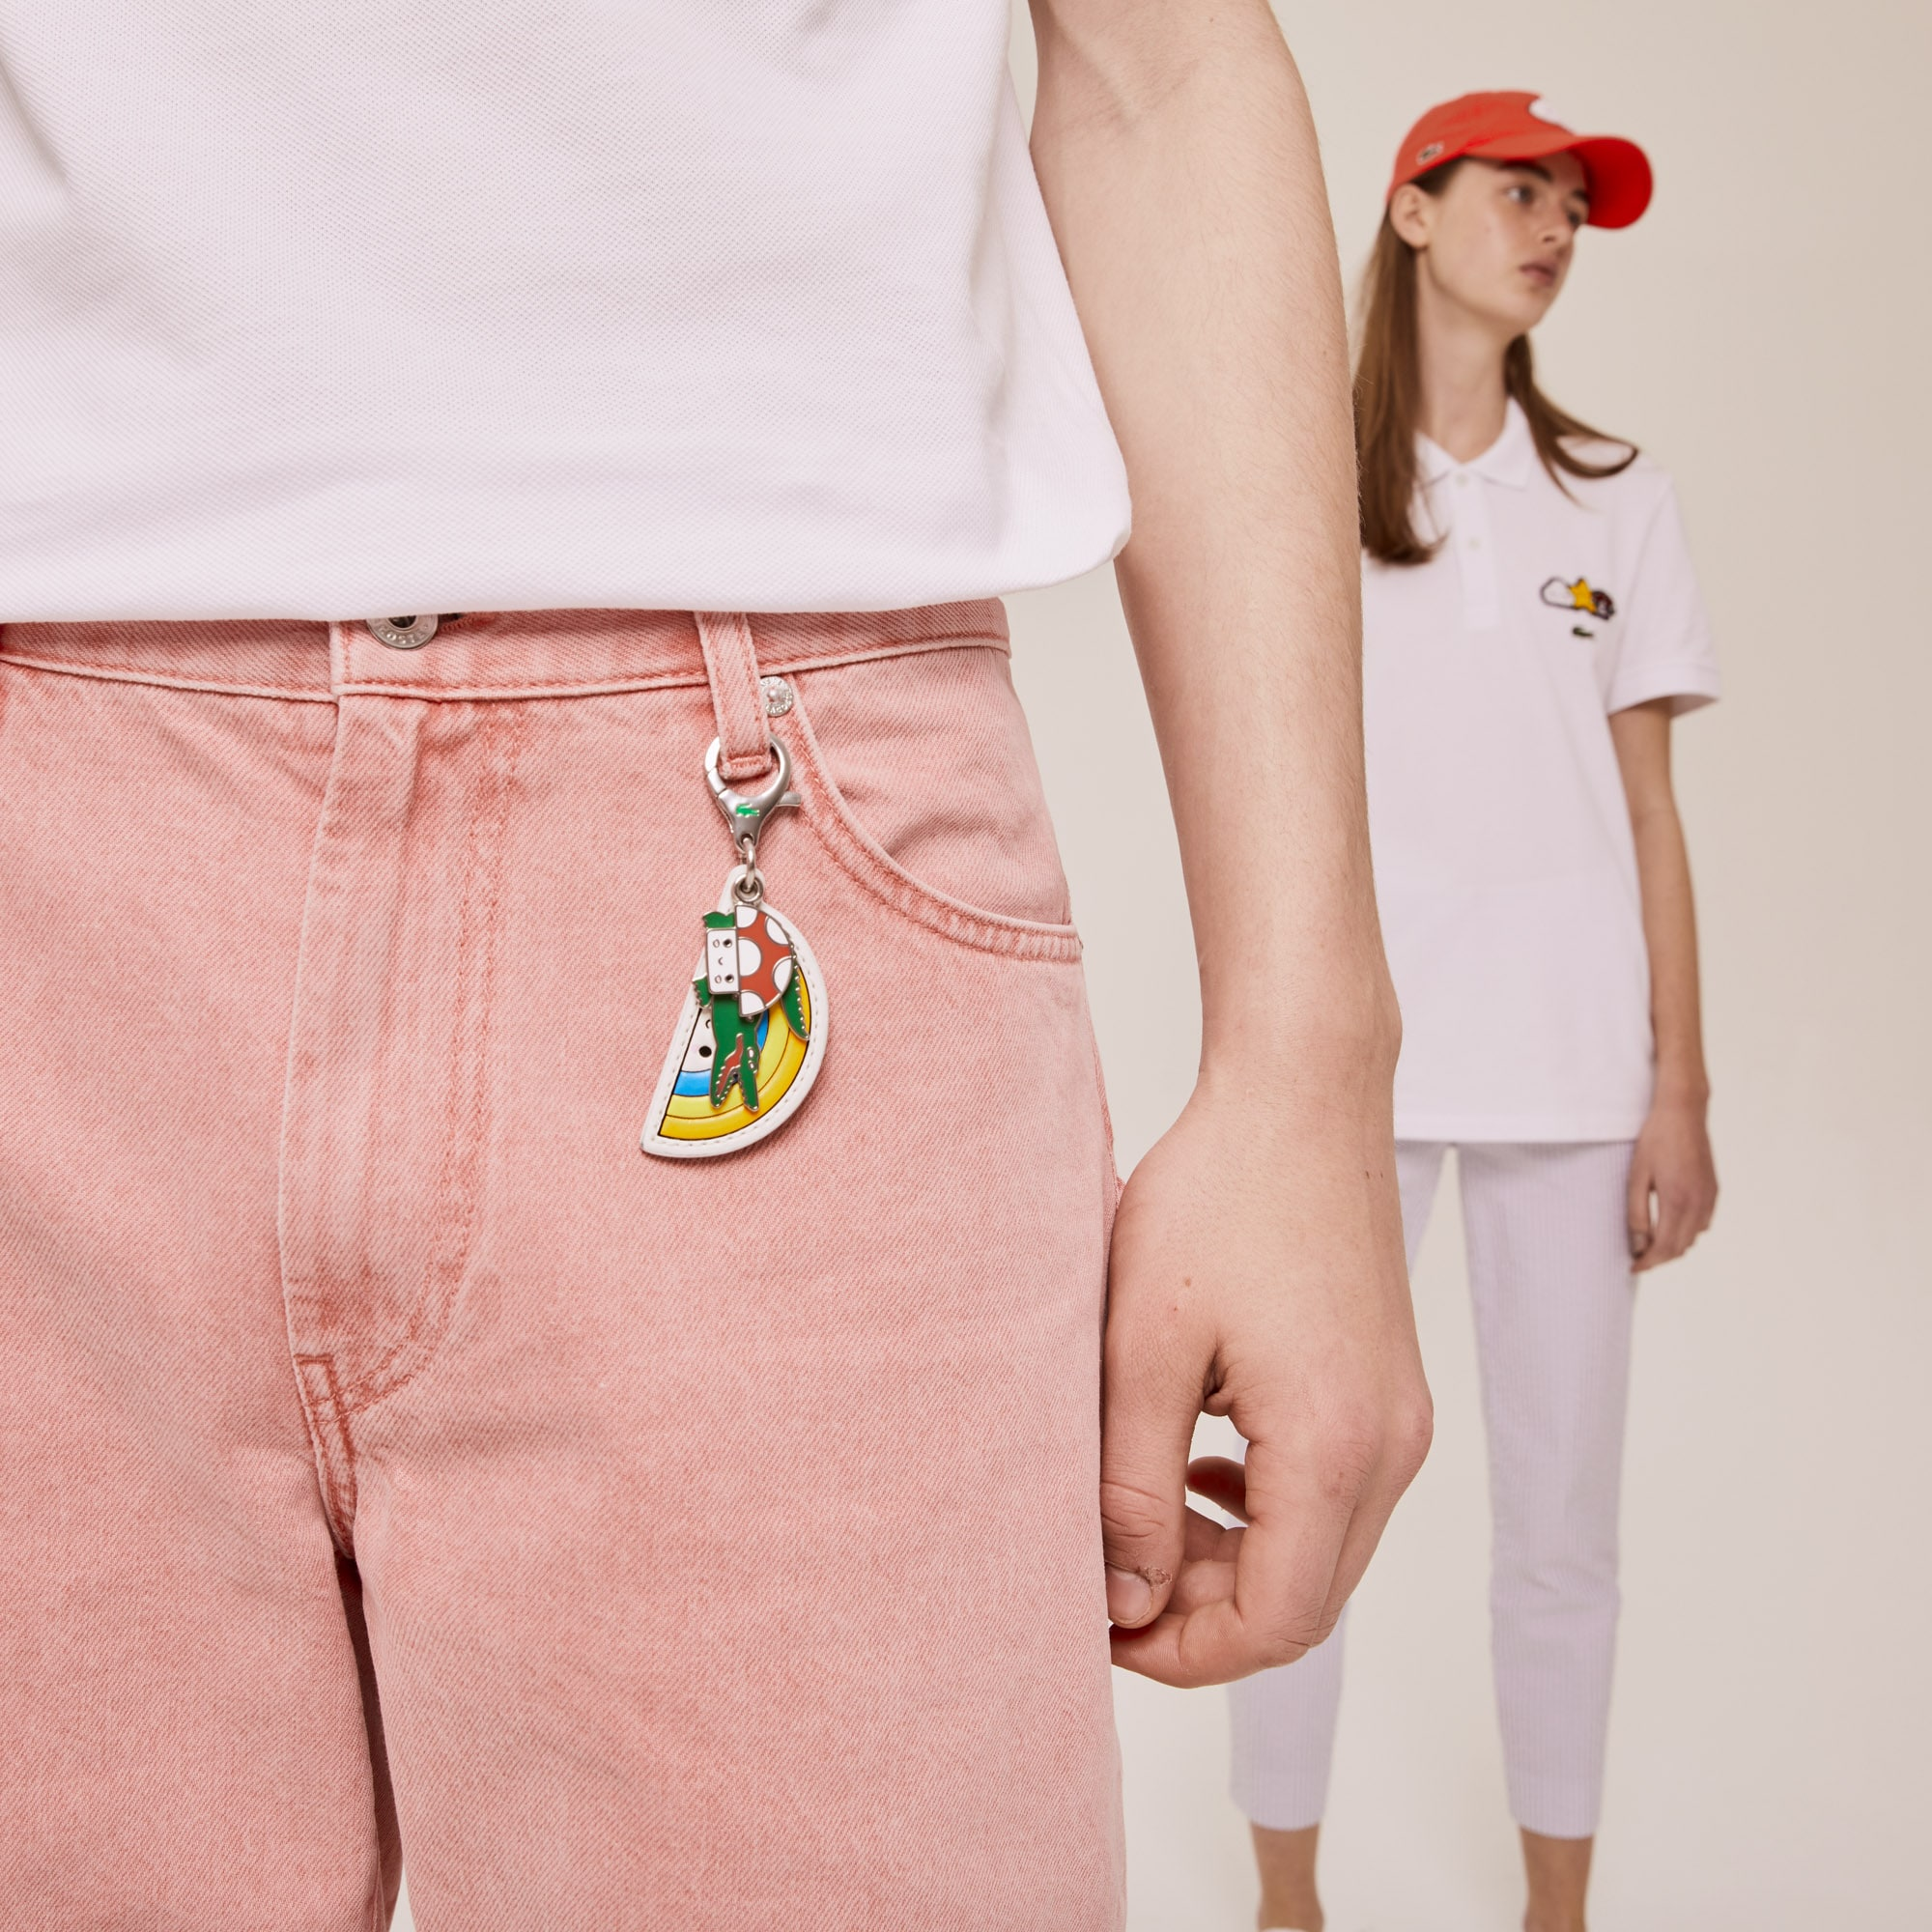 라코스테 x 프렌즈 위드유 콜라보 키링 Lacoste x FriendsWithYou Coloured Metal Charm Keyring,ARC EN CIEL